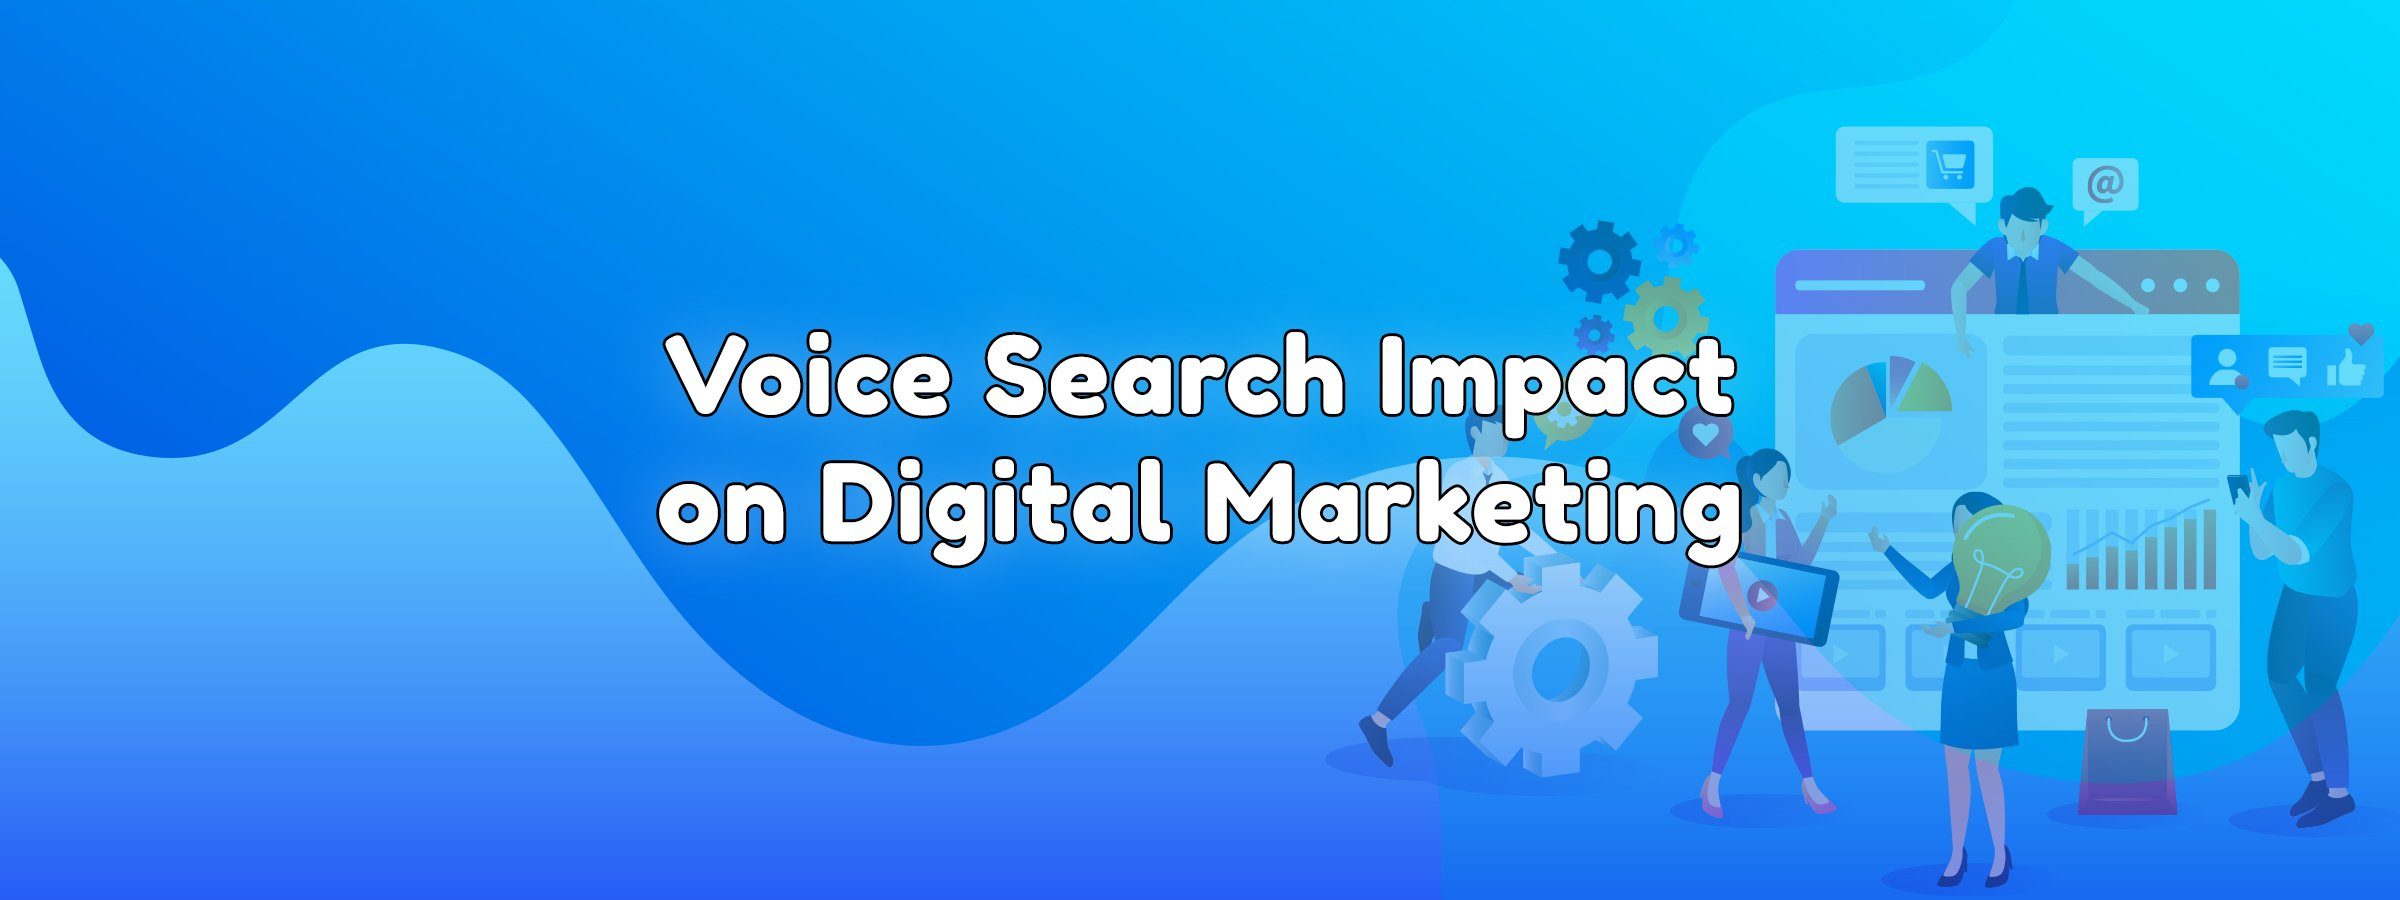 Voice Search Impact on Digital Marketing